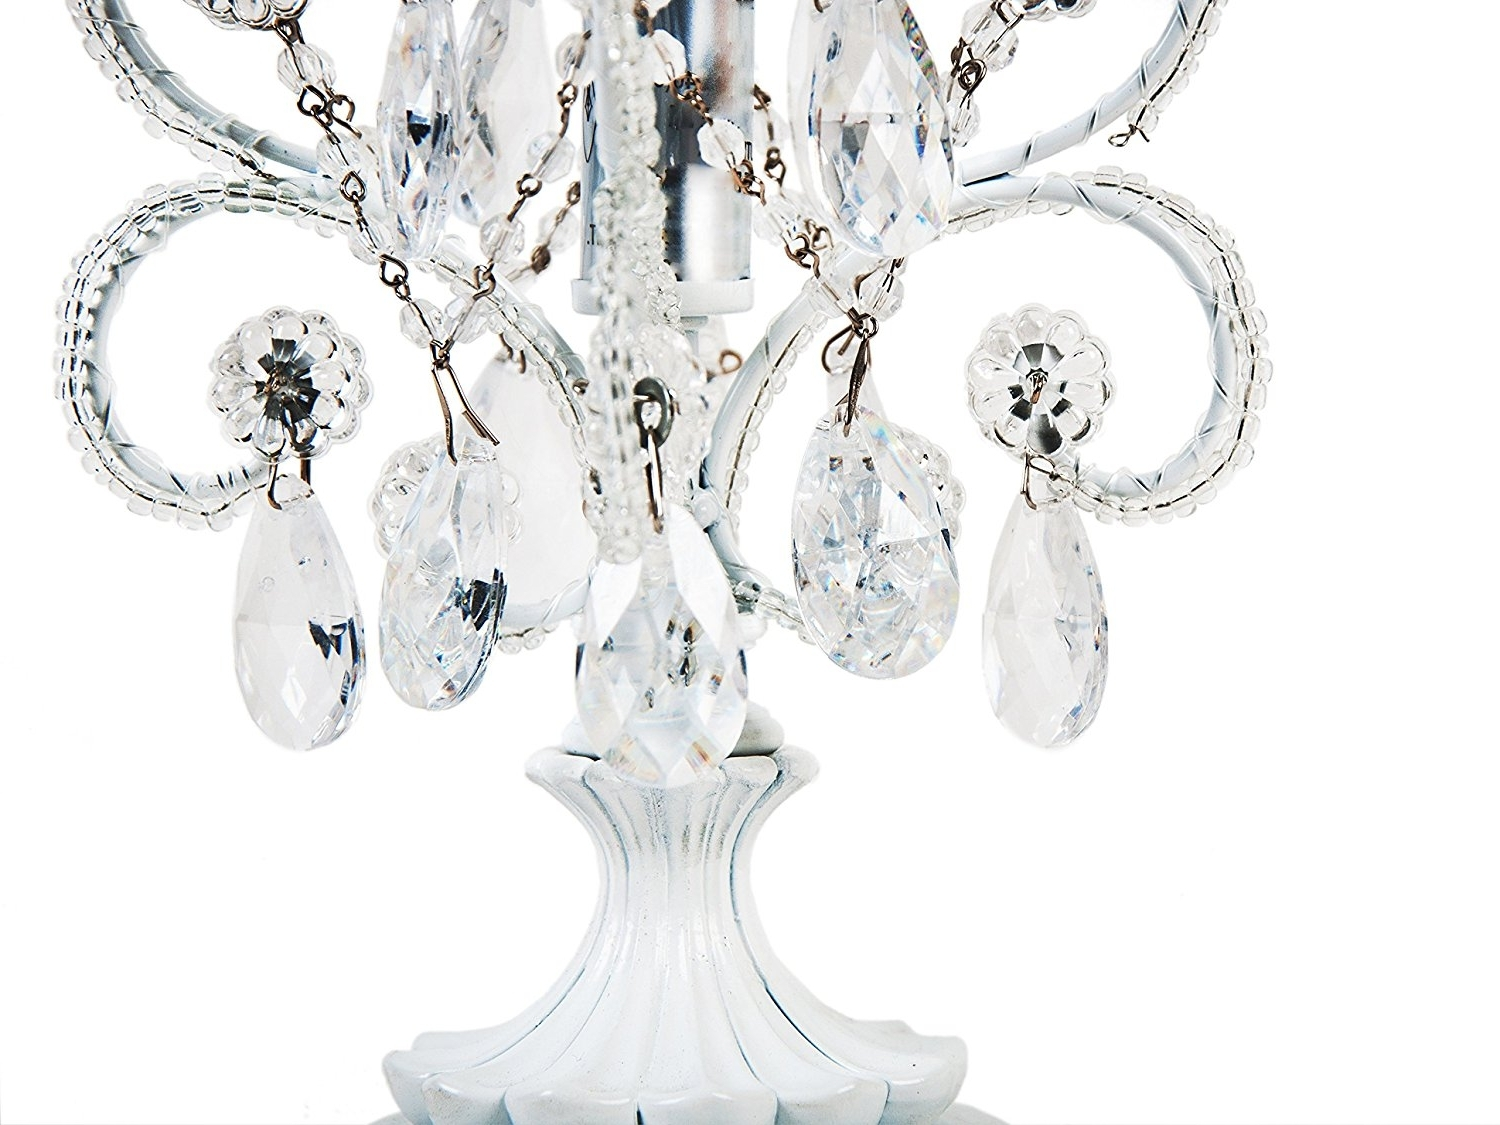 Amazon : Tadpoles Mini Chandelier Table Lamp, White : Crystal Pertaining To Best And Newest Mini Chandelier Table Lamps (View 1 of 15)